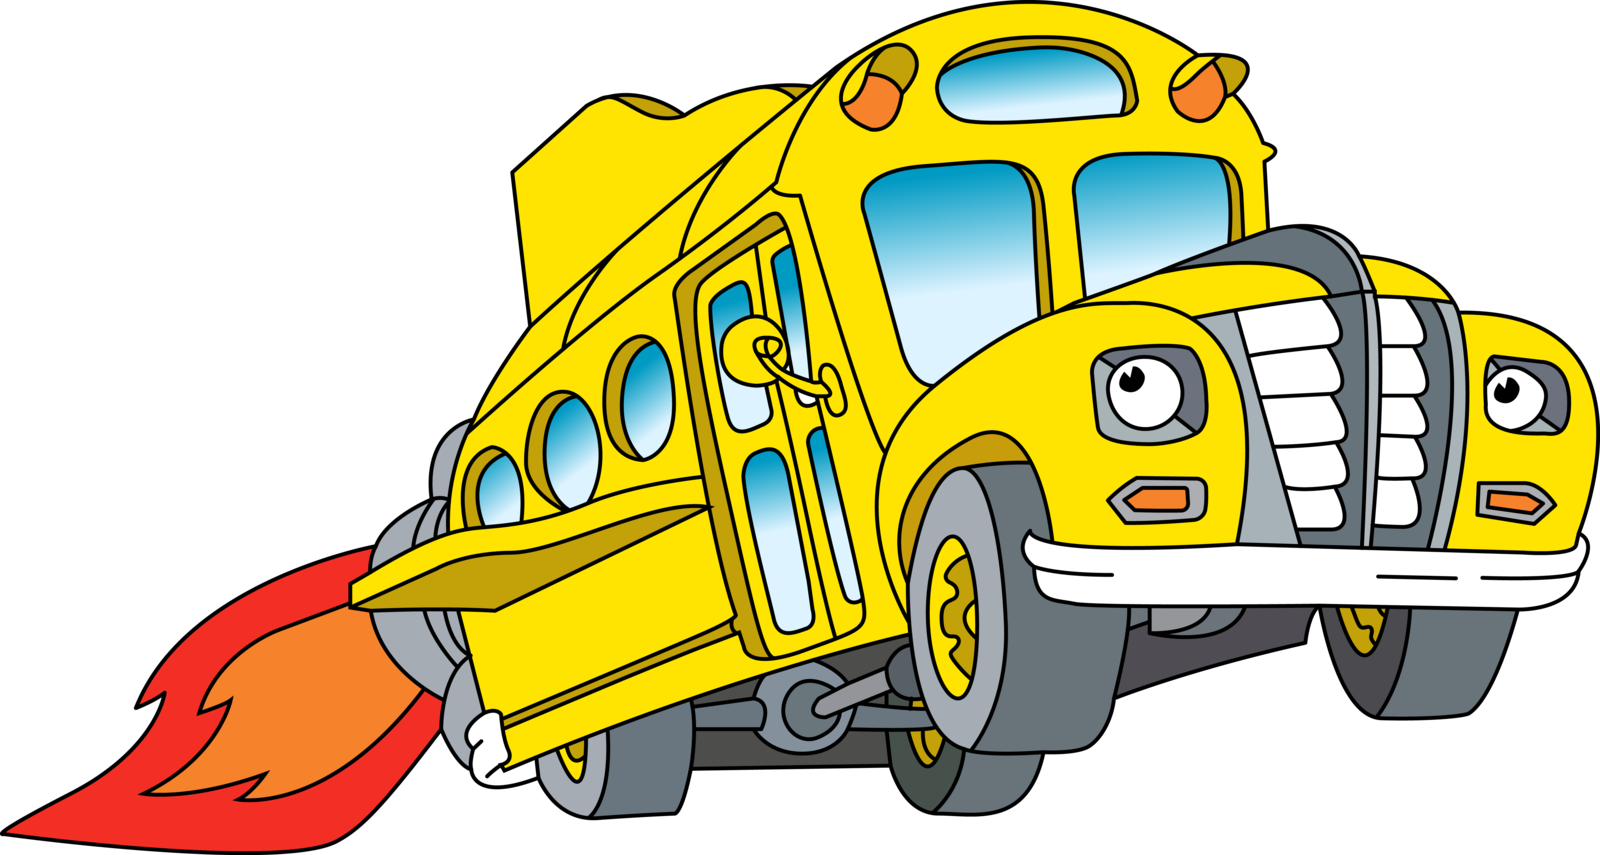 Bus and car clipart svg black and white download Magic School Bus Clipart at GetDrawings.com | Free for personal use ... svg black and white download